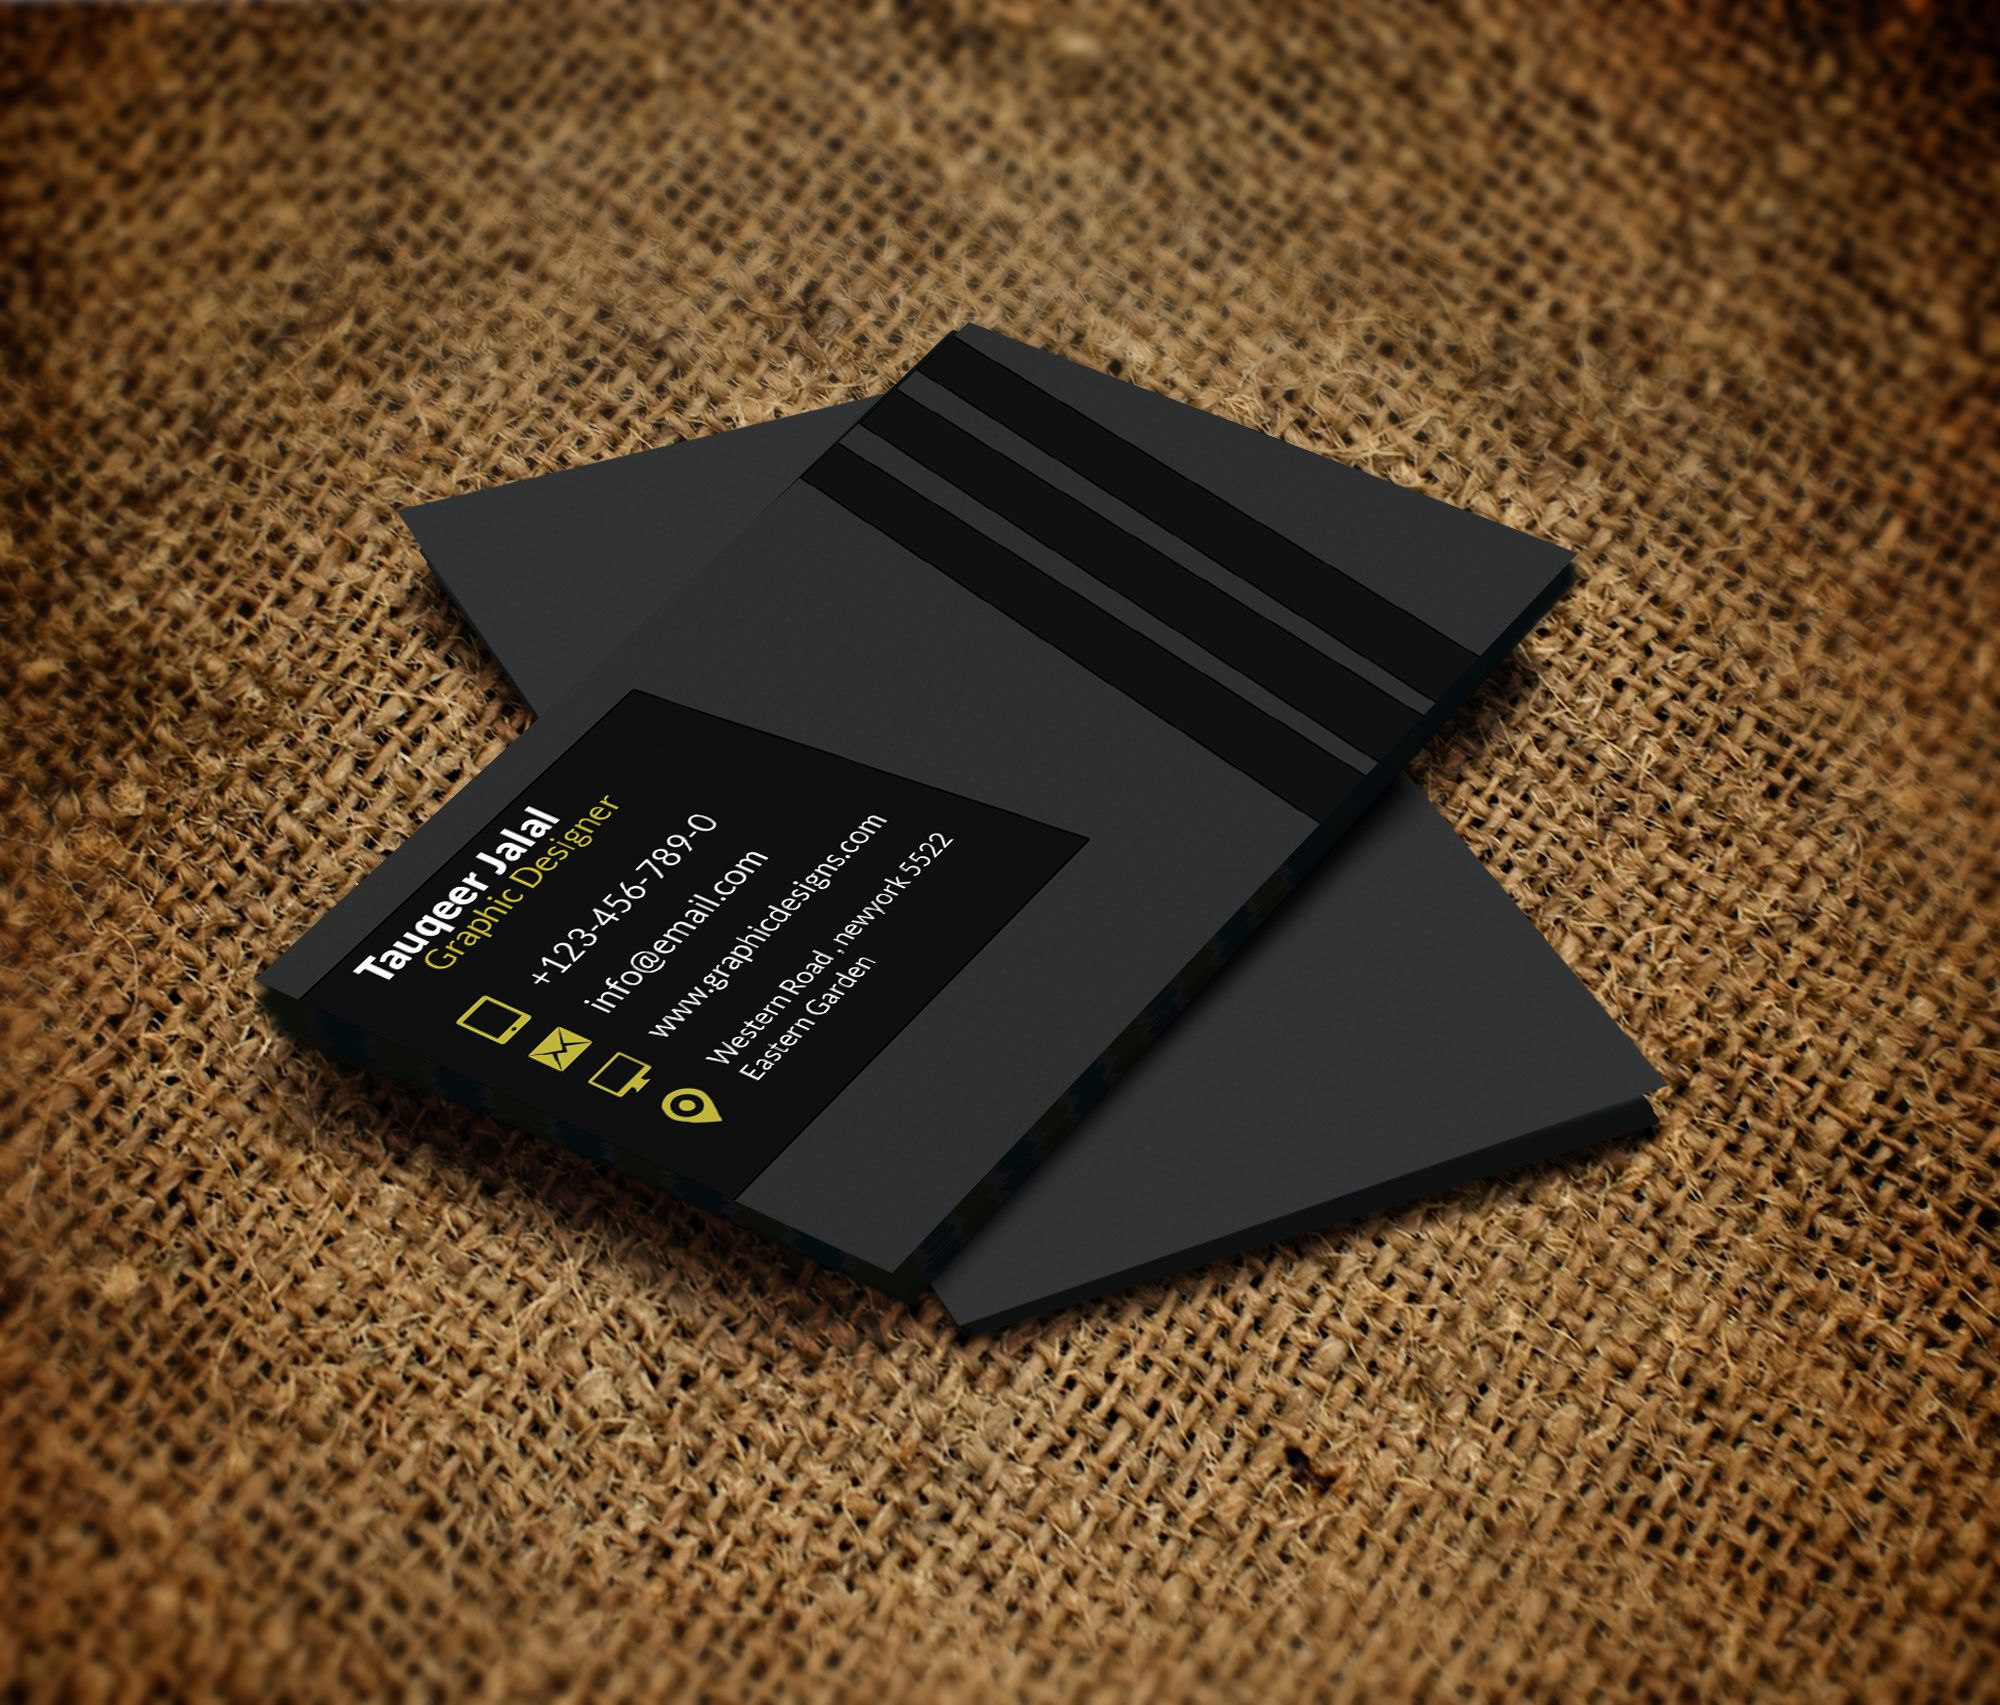 Free simple business card templates free business card download free simple business card templates free business card download graphic design inspiration fbccfo Image collections